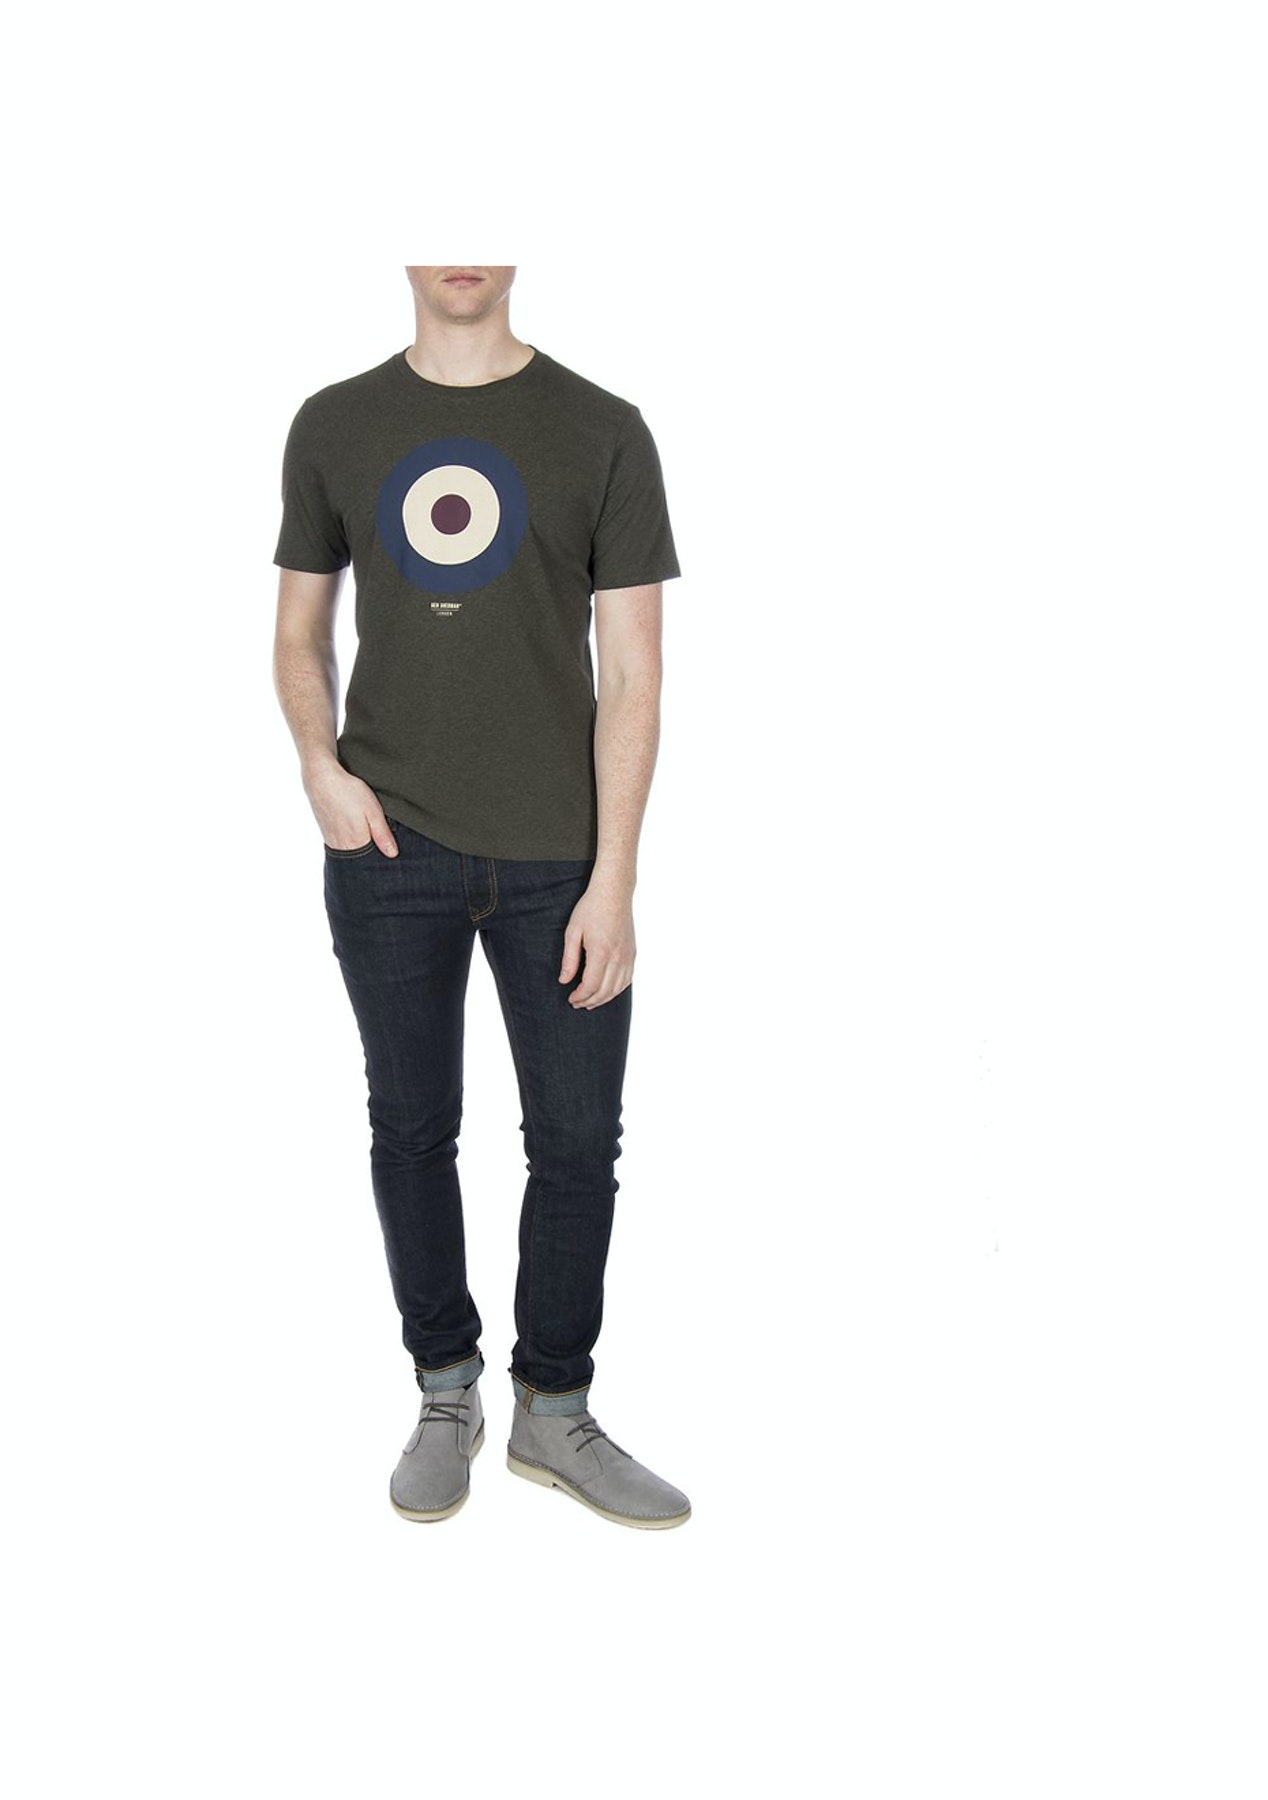 26c5ce4e7 Ben Sherman - The Target Tee - Peat - The Big Warehouse Clearout - Onceit